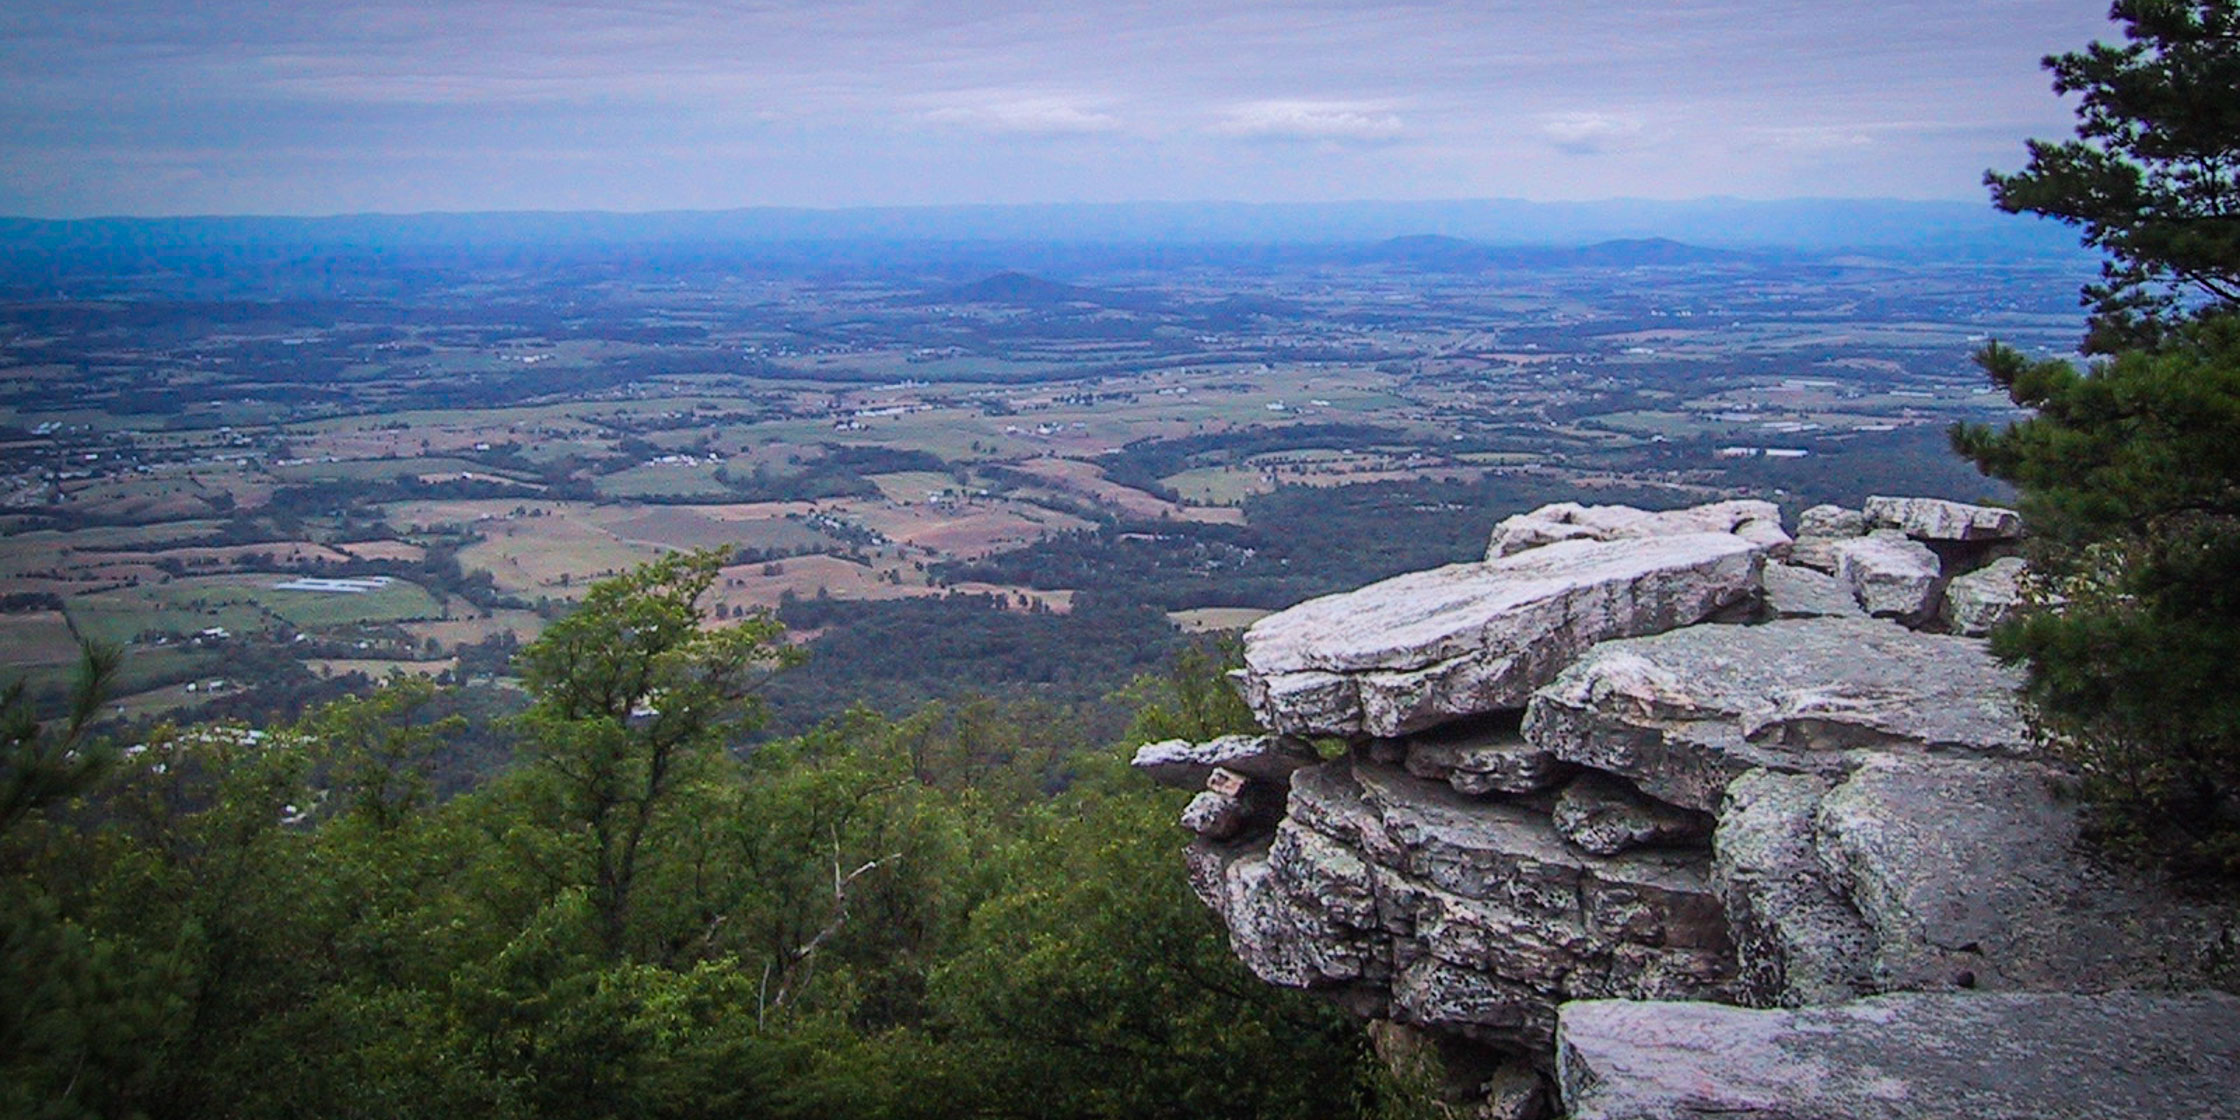 The view of the Shenandoah Valley from Bird Knob